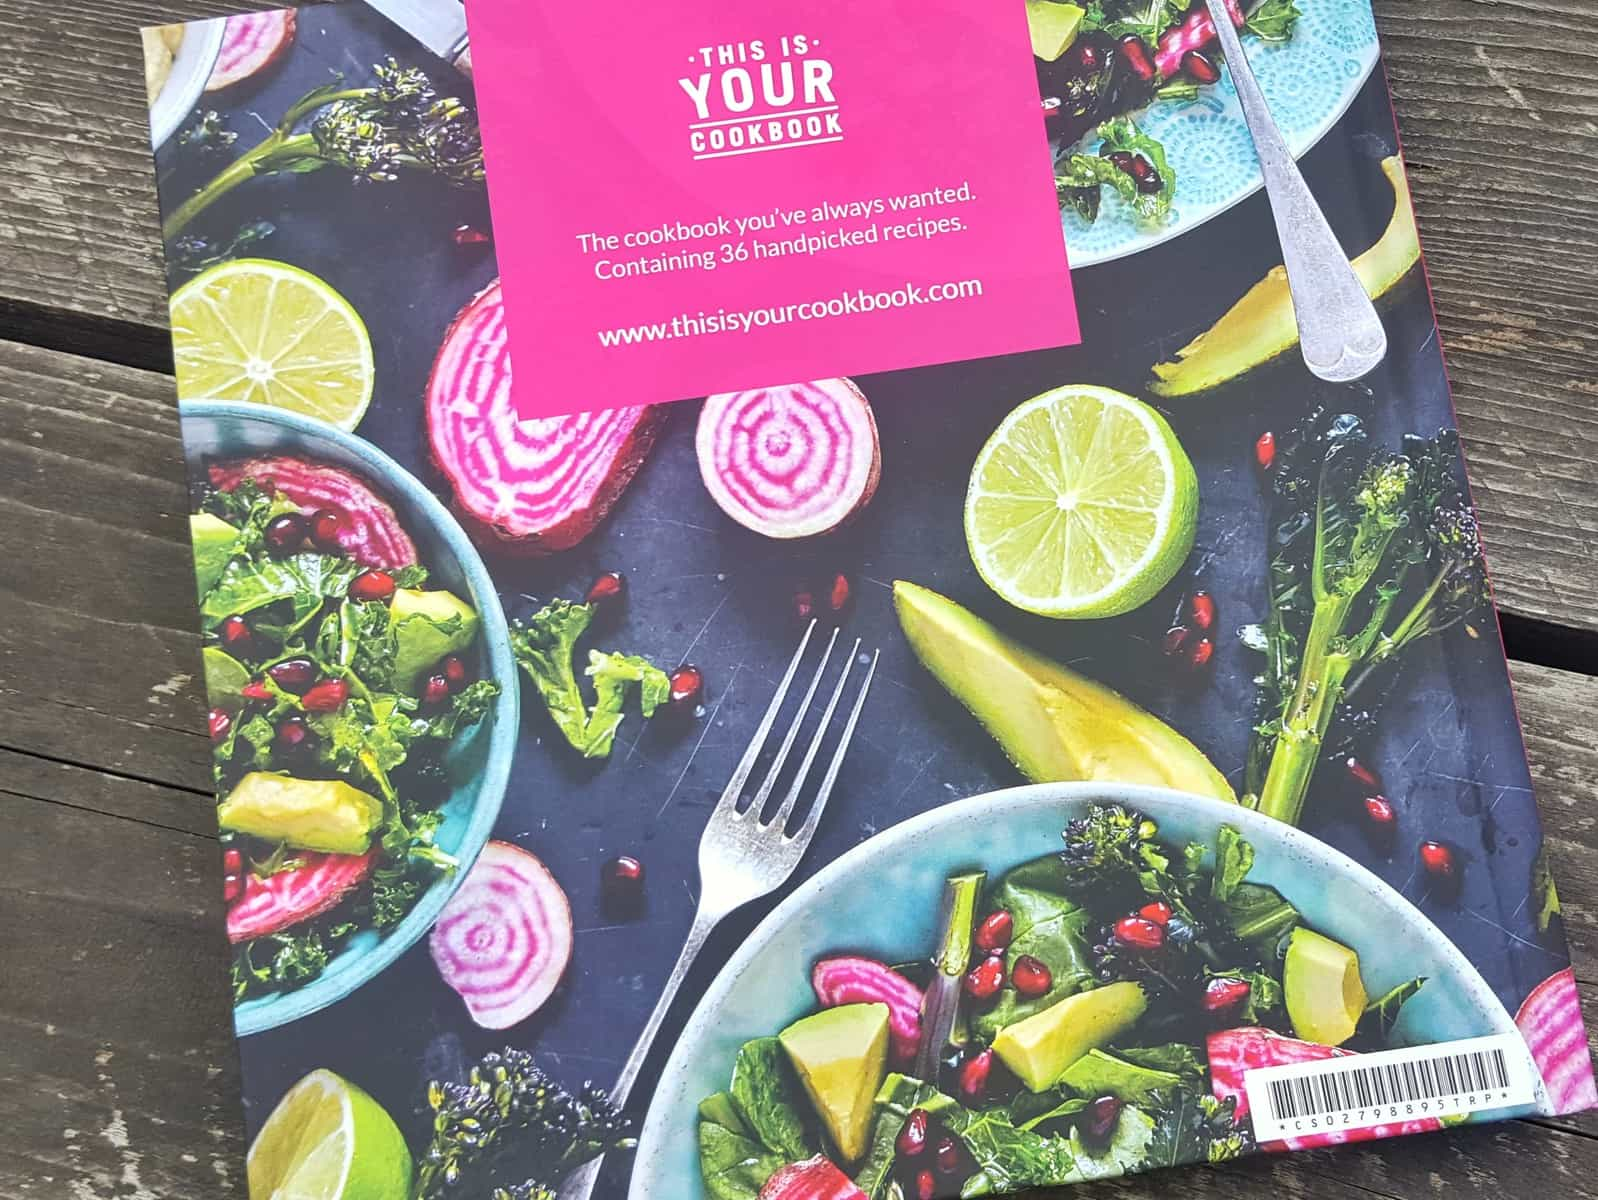 This is your cookbook - a personalised cookbook that you design yourself with recipes that you choose with the recipient in mind